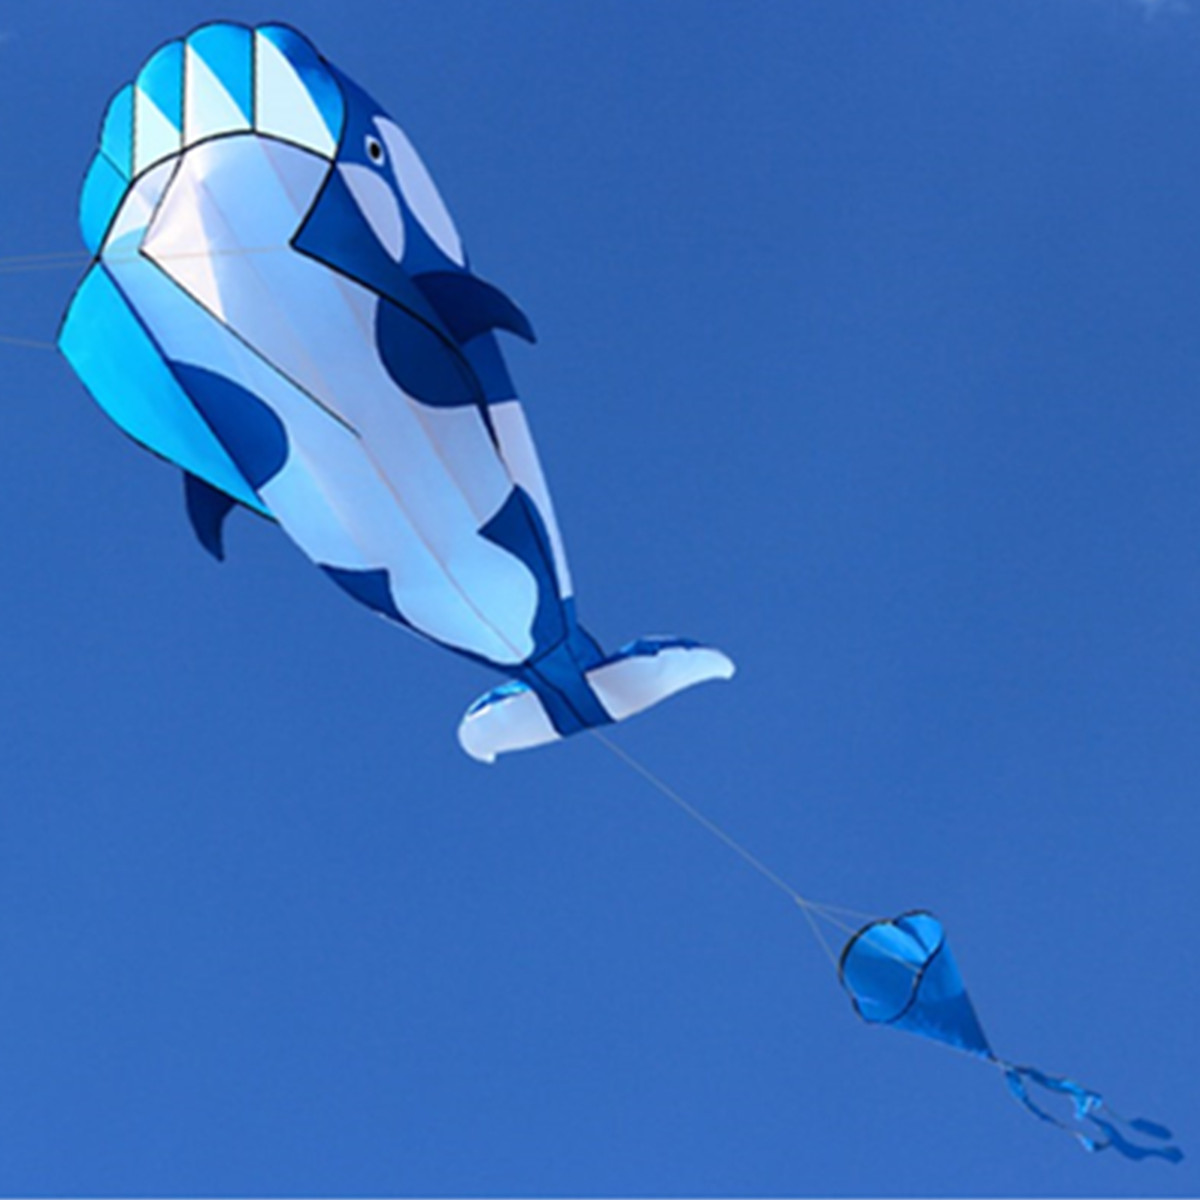 Whale Kite Single Line Stunt Kite Outdoor Sports Toy Children Kids